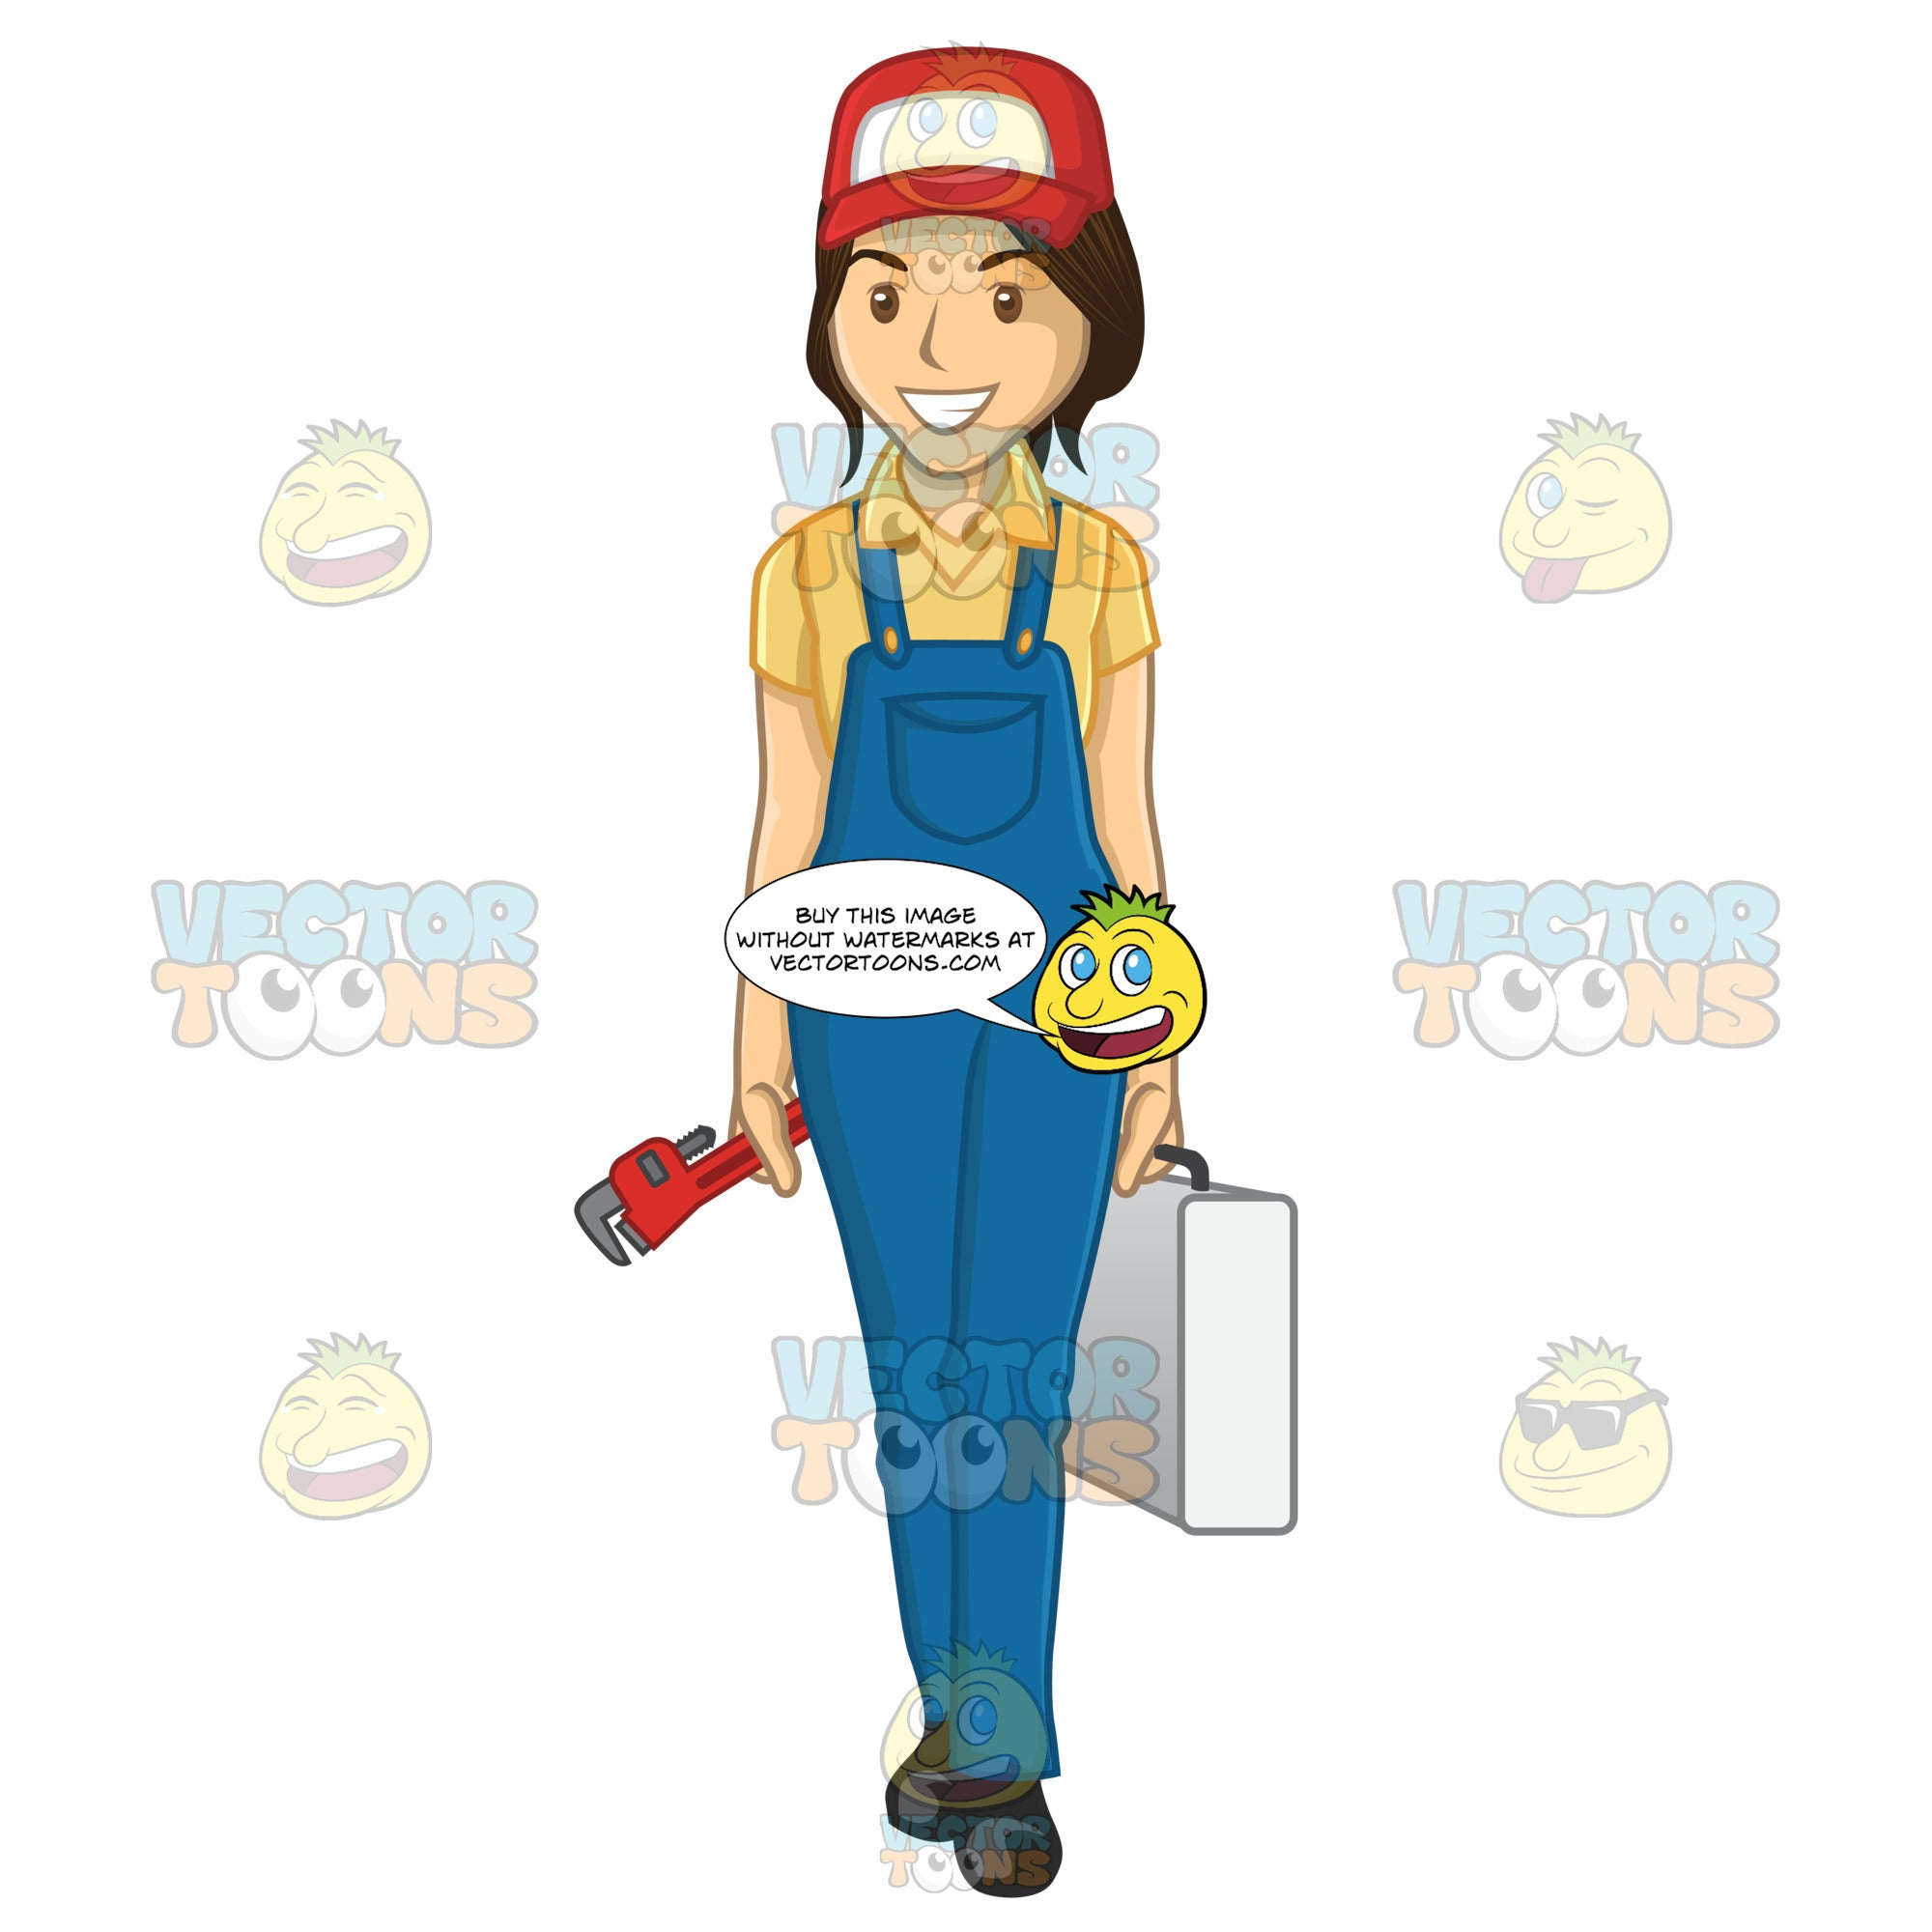 Woman Plumber Carrying A Wrench And Tool Box While Wearing Overalls And A Red Trucker Cap